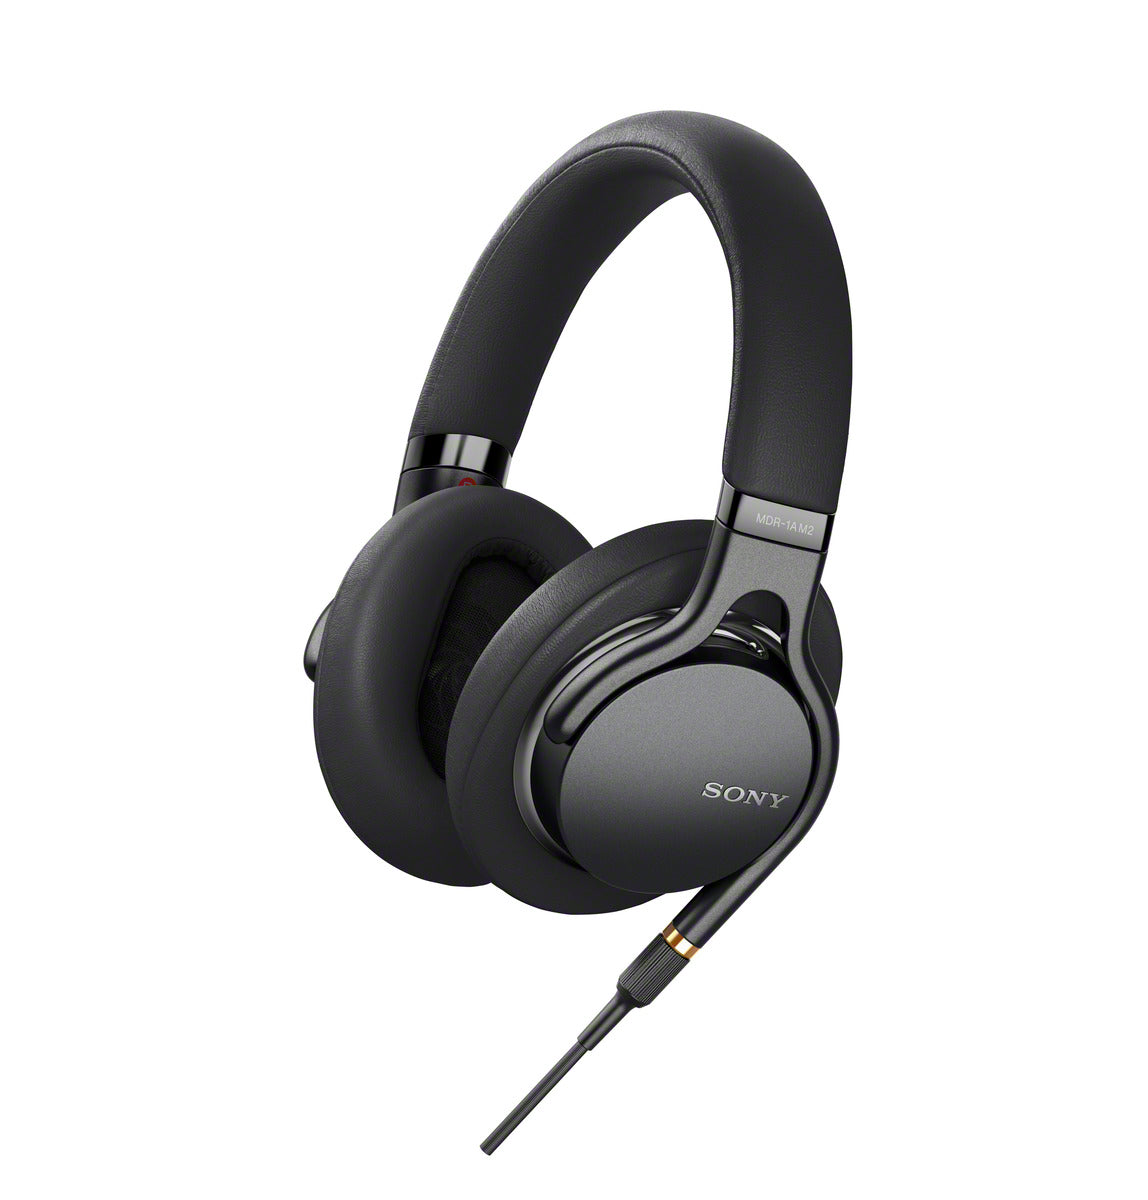 Sony MDR-1AM2 Hi-Res Headphone - Jaben - The Little Headphone Store